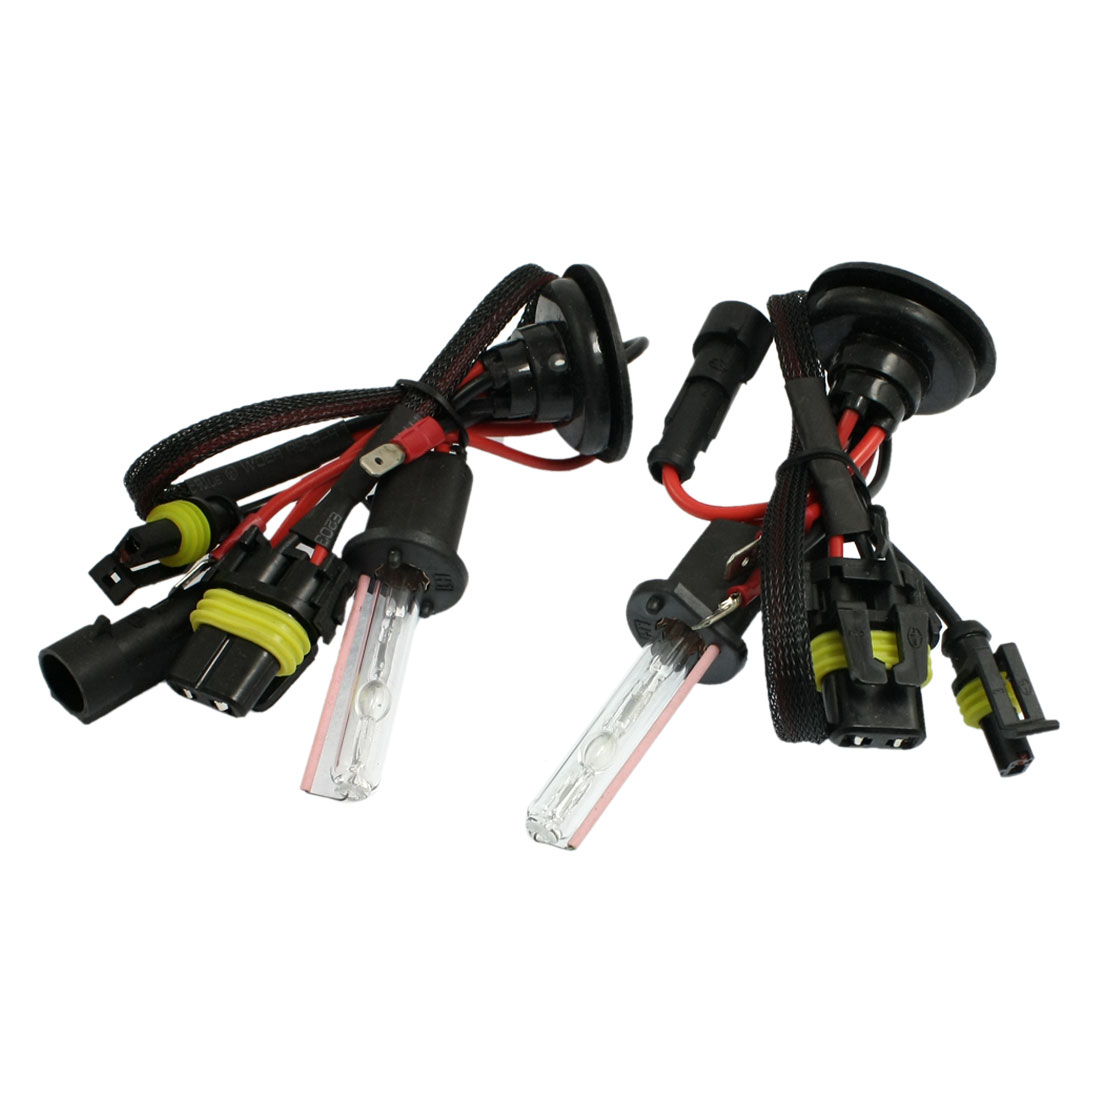 2 Pcs Car DC 12V 35W H1 HID Xenon Bulbs Headlight Lamp 12000K